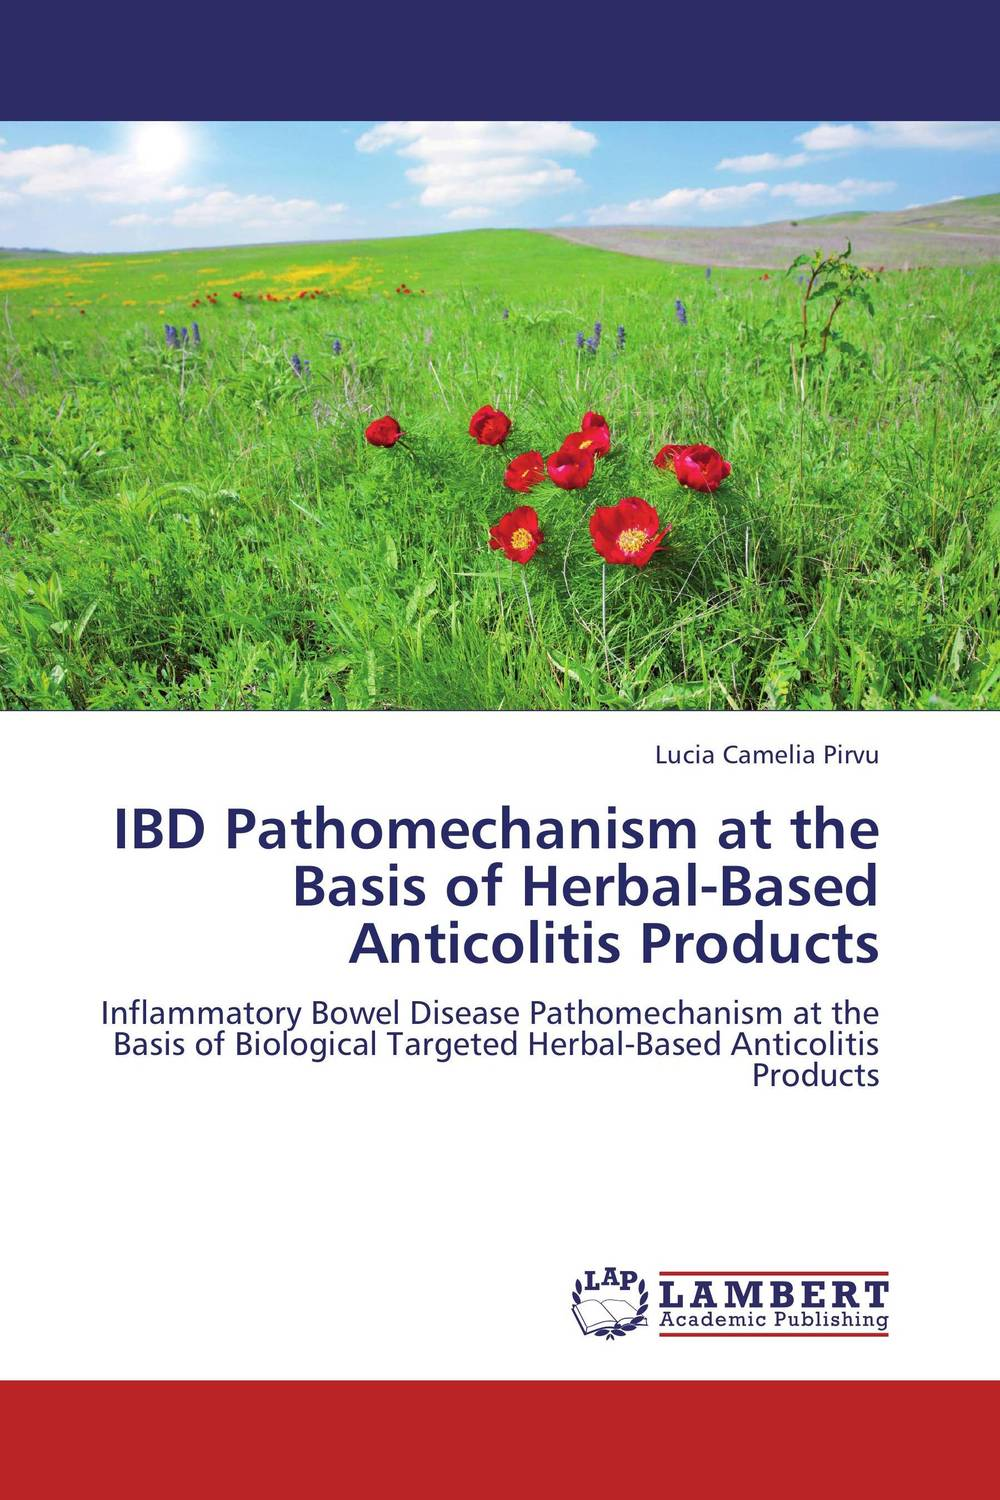 IBD Pathomechanism at the Basis of Herbal-Based Anticolitis Products ibd гелевый лак бульвар сансет 56787 ibd just gel polish sunset strip 19400 124 14 мл